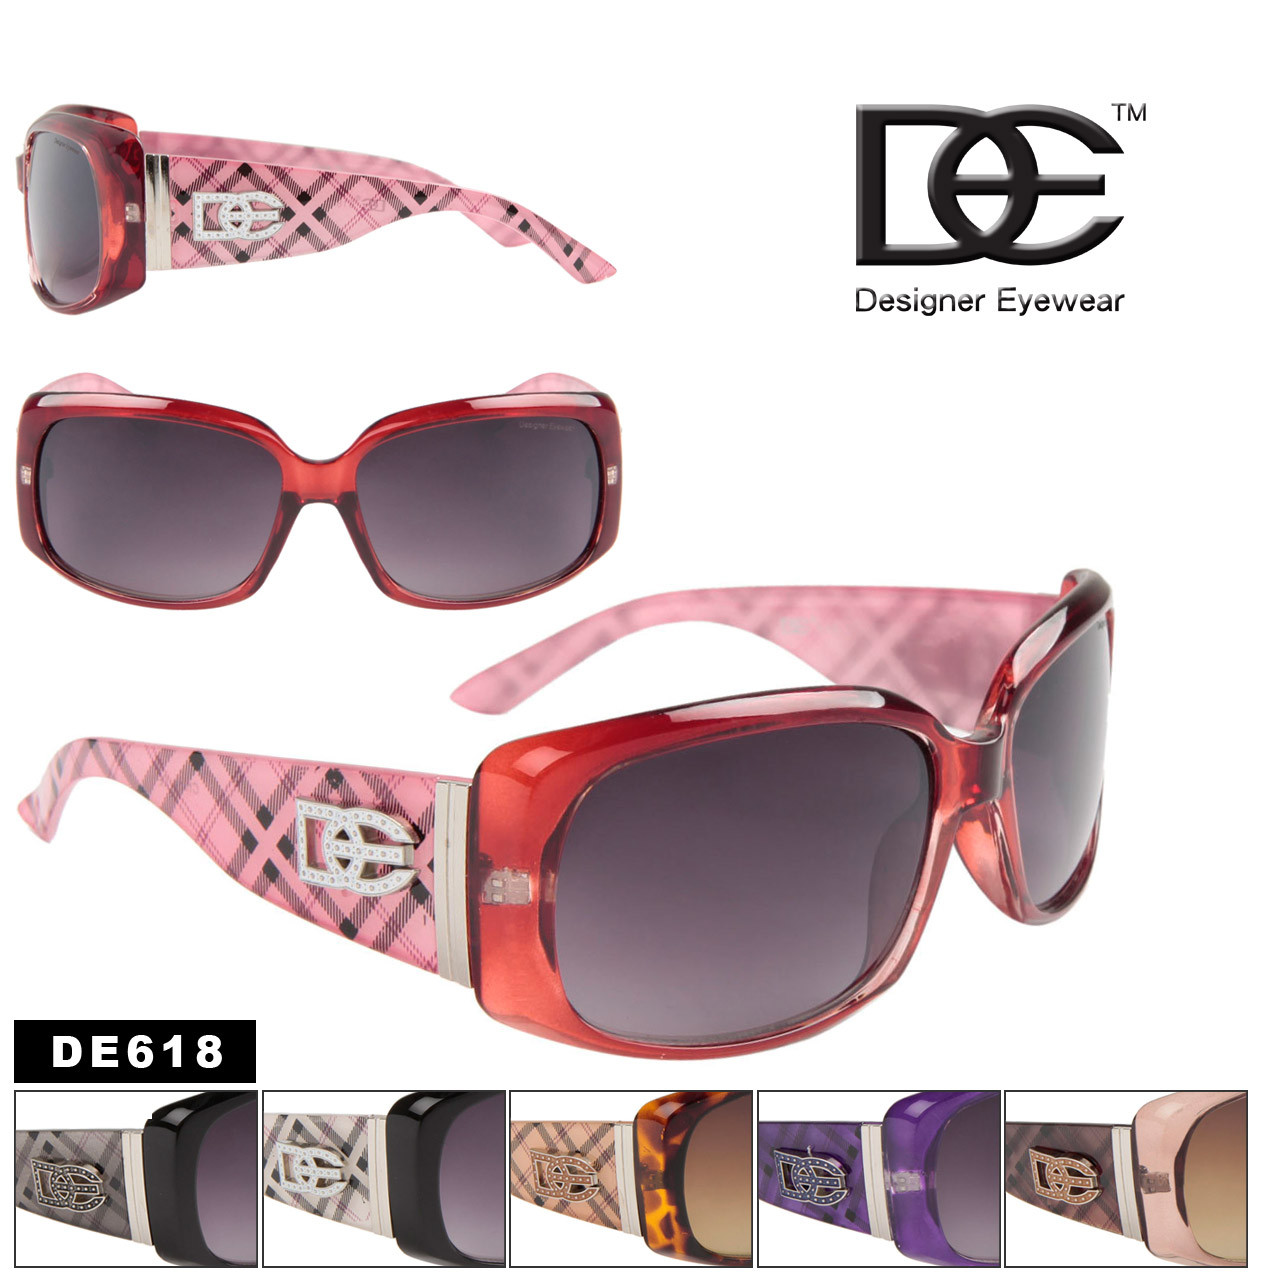 DE618 Fashion Sunglasses